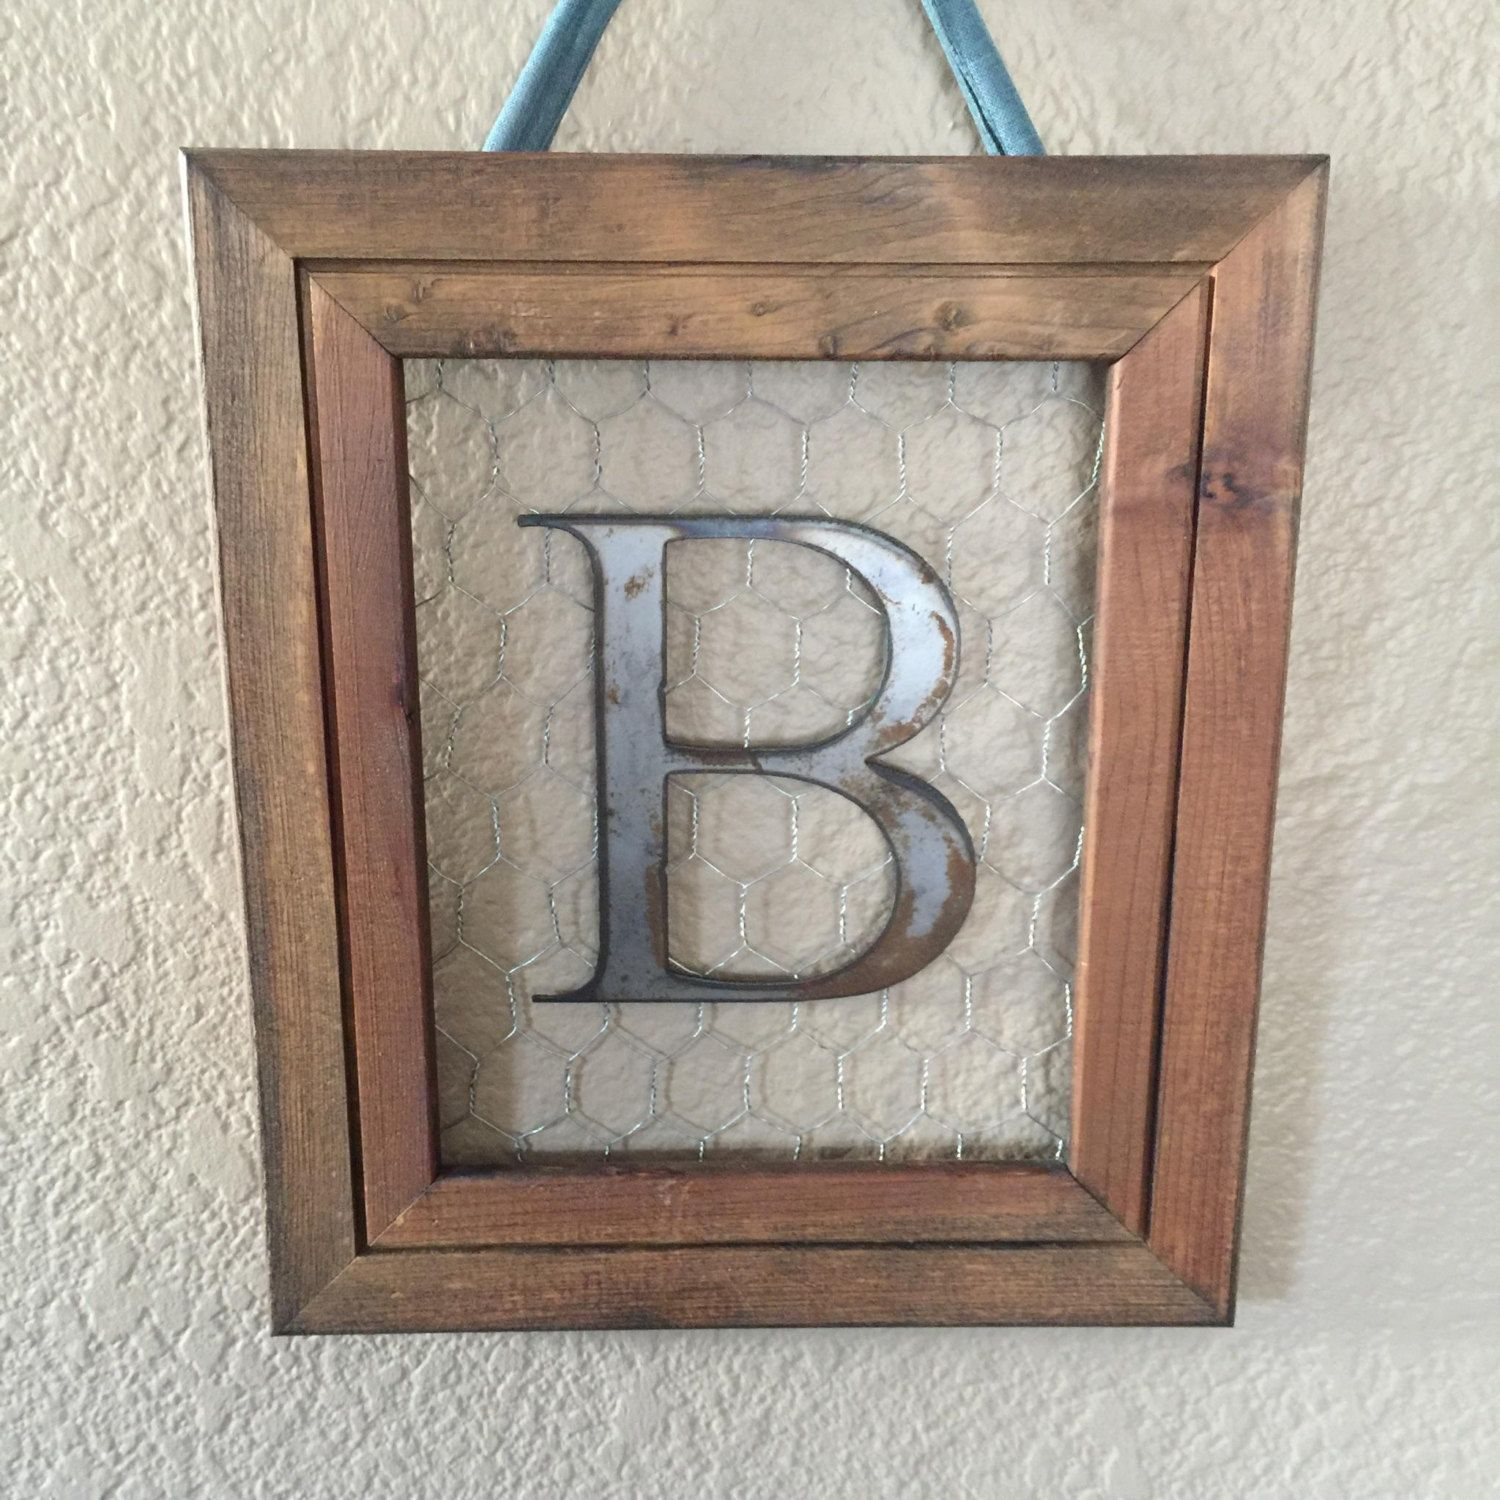 Monogrammed Frame Personalized Frames Personalized Wall Decor Hanging Frames By